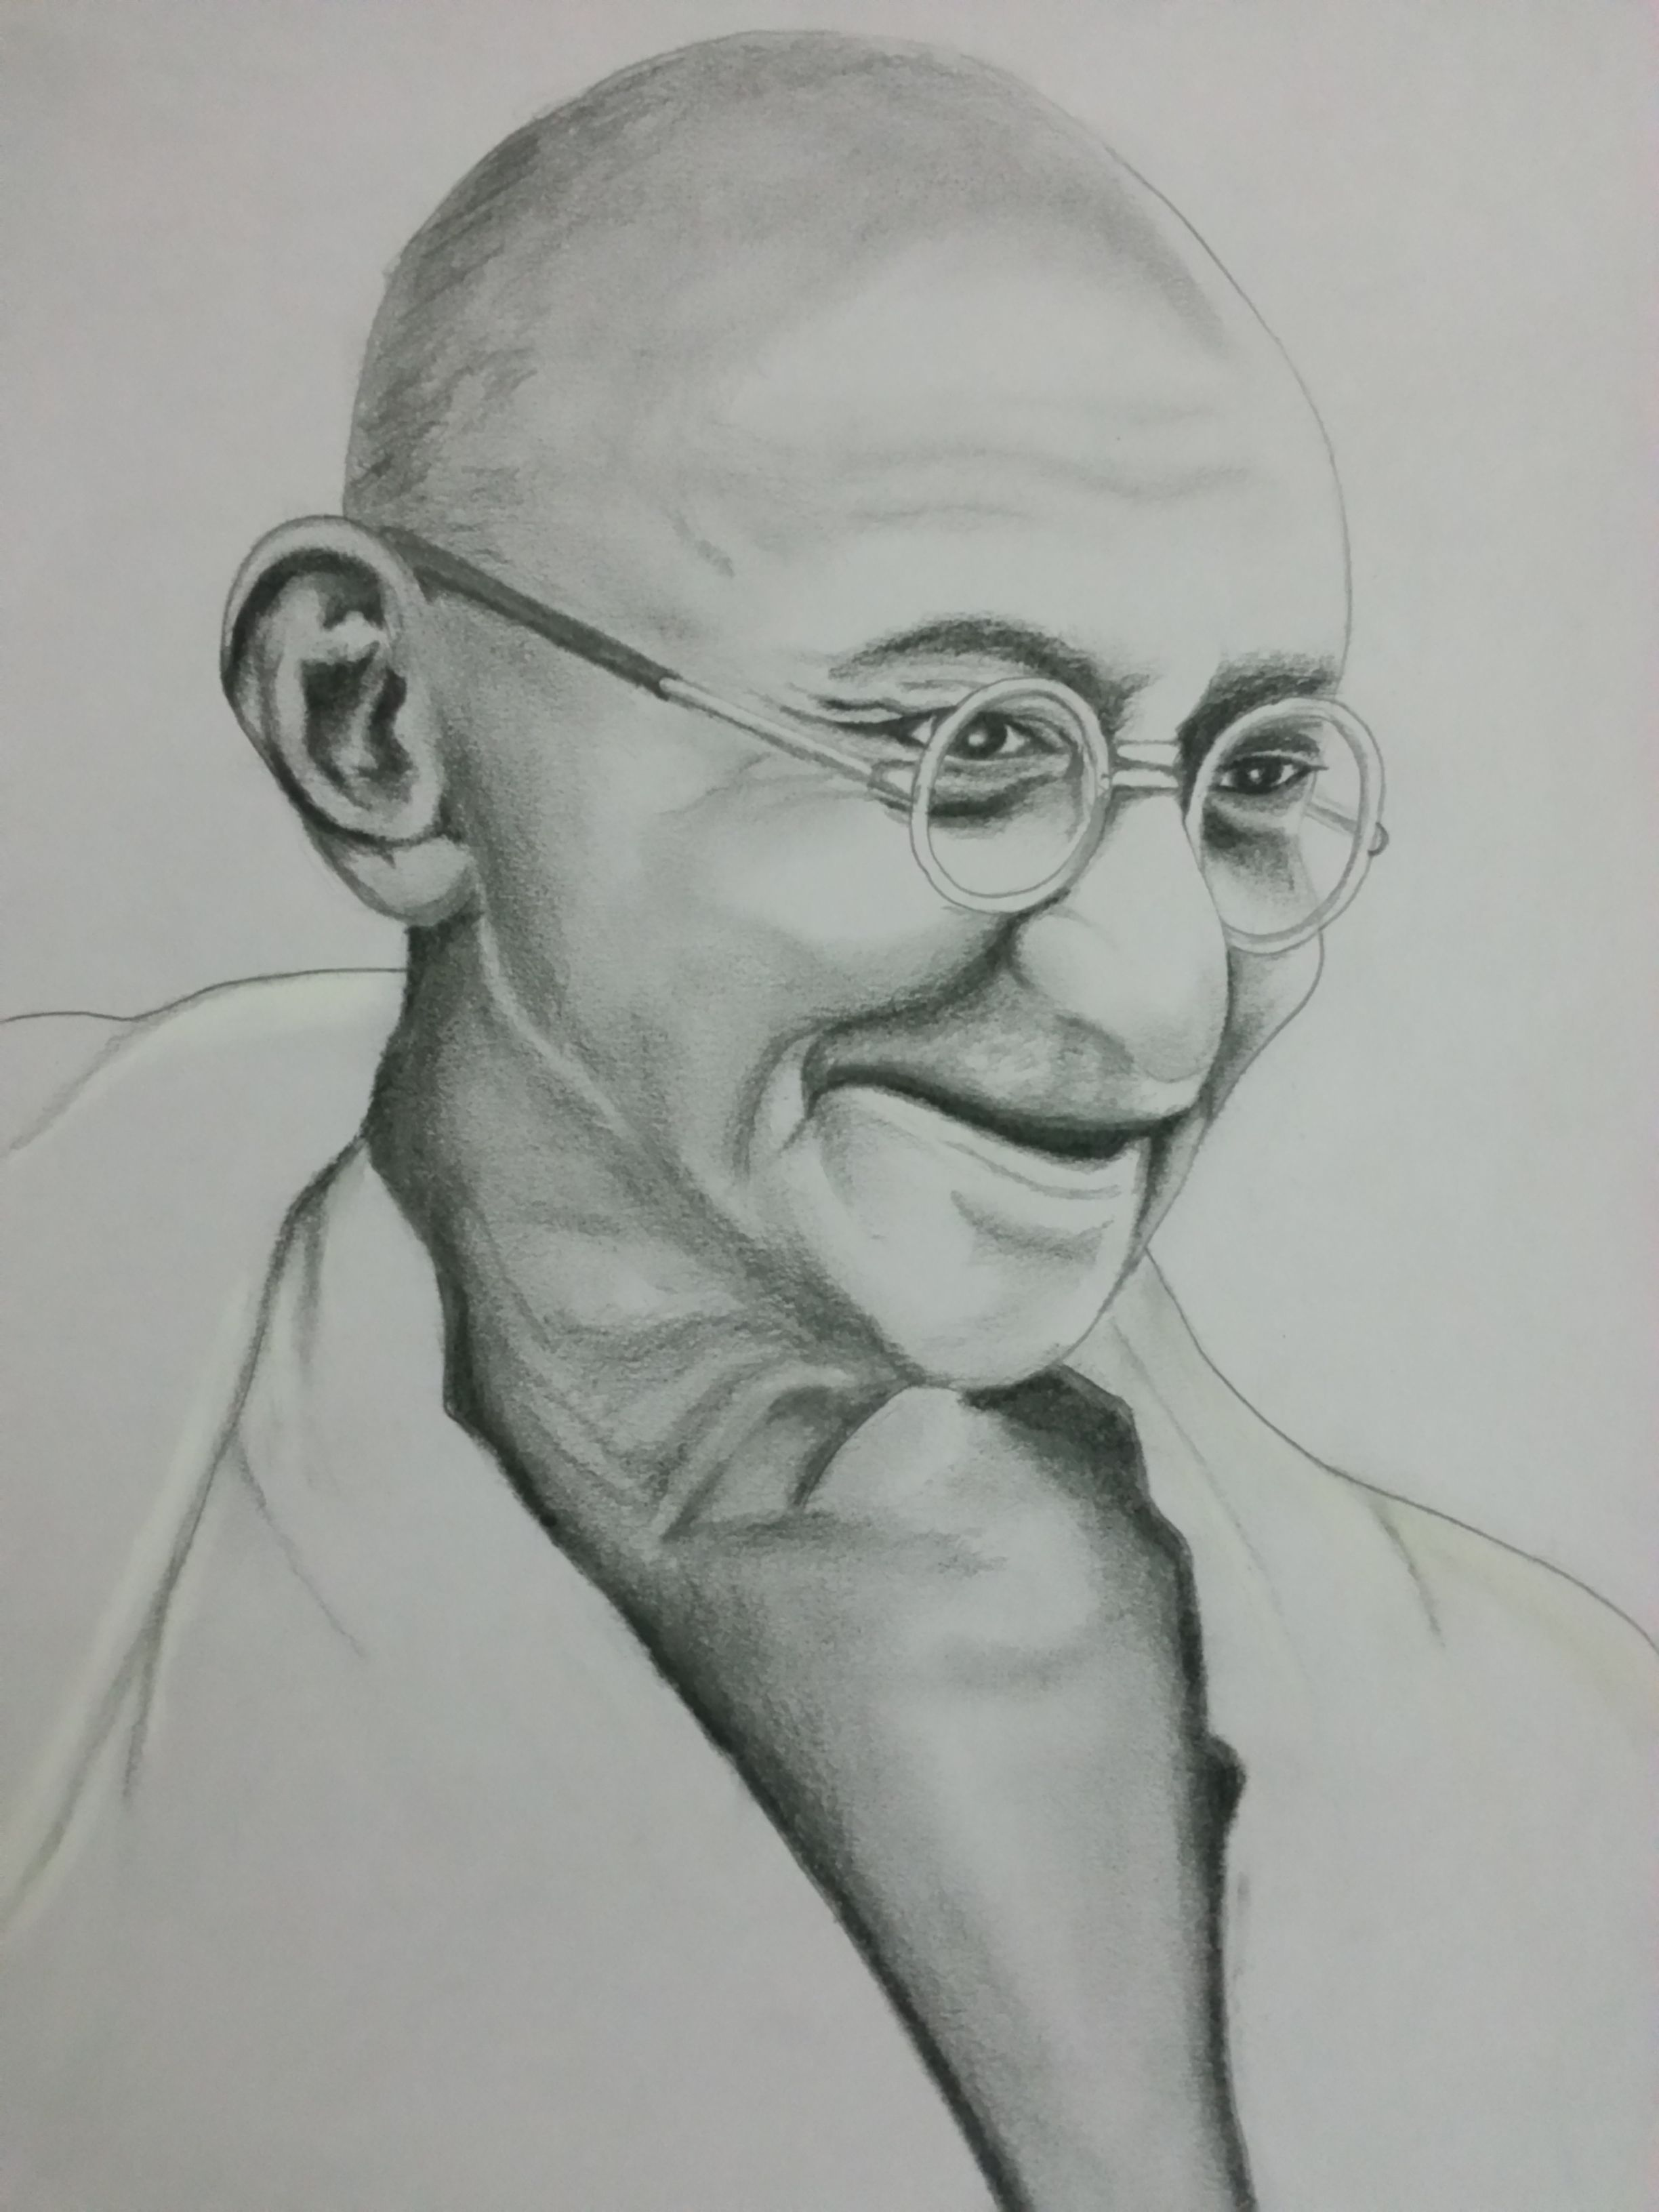 Drawing of mahatma gandhiji visit and subscribe our youtube channel for more fun